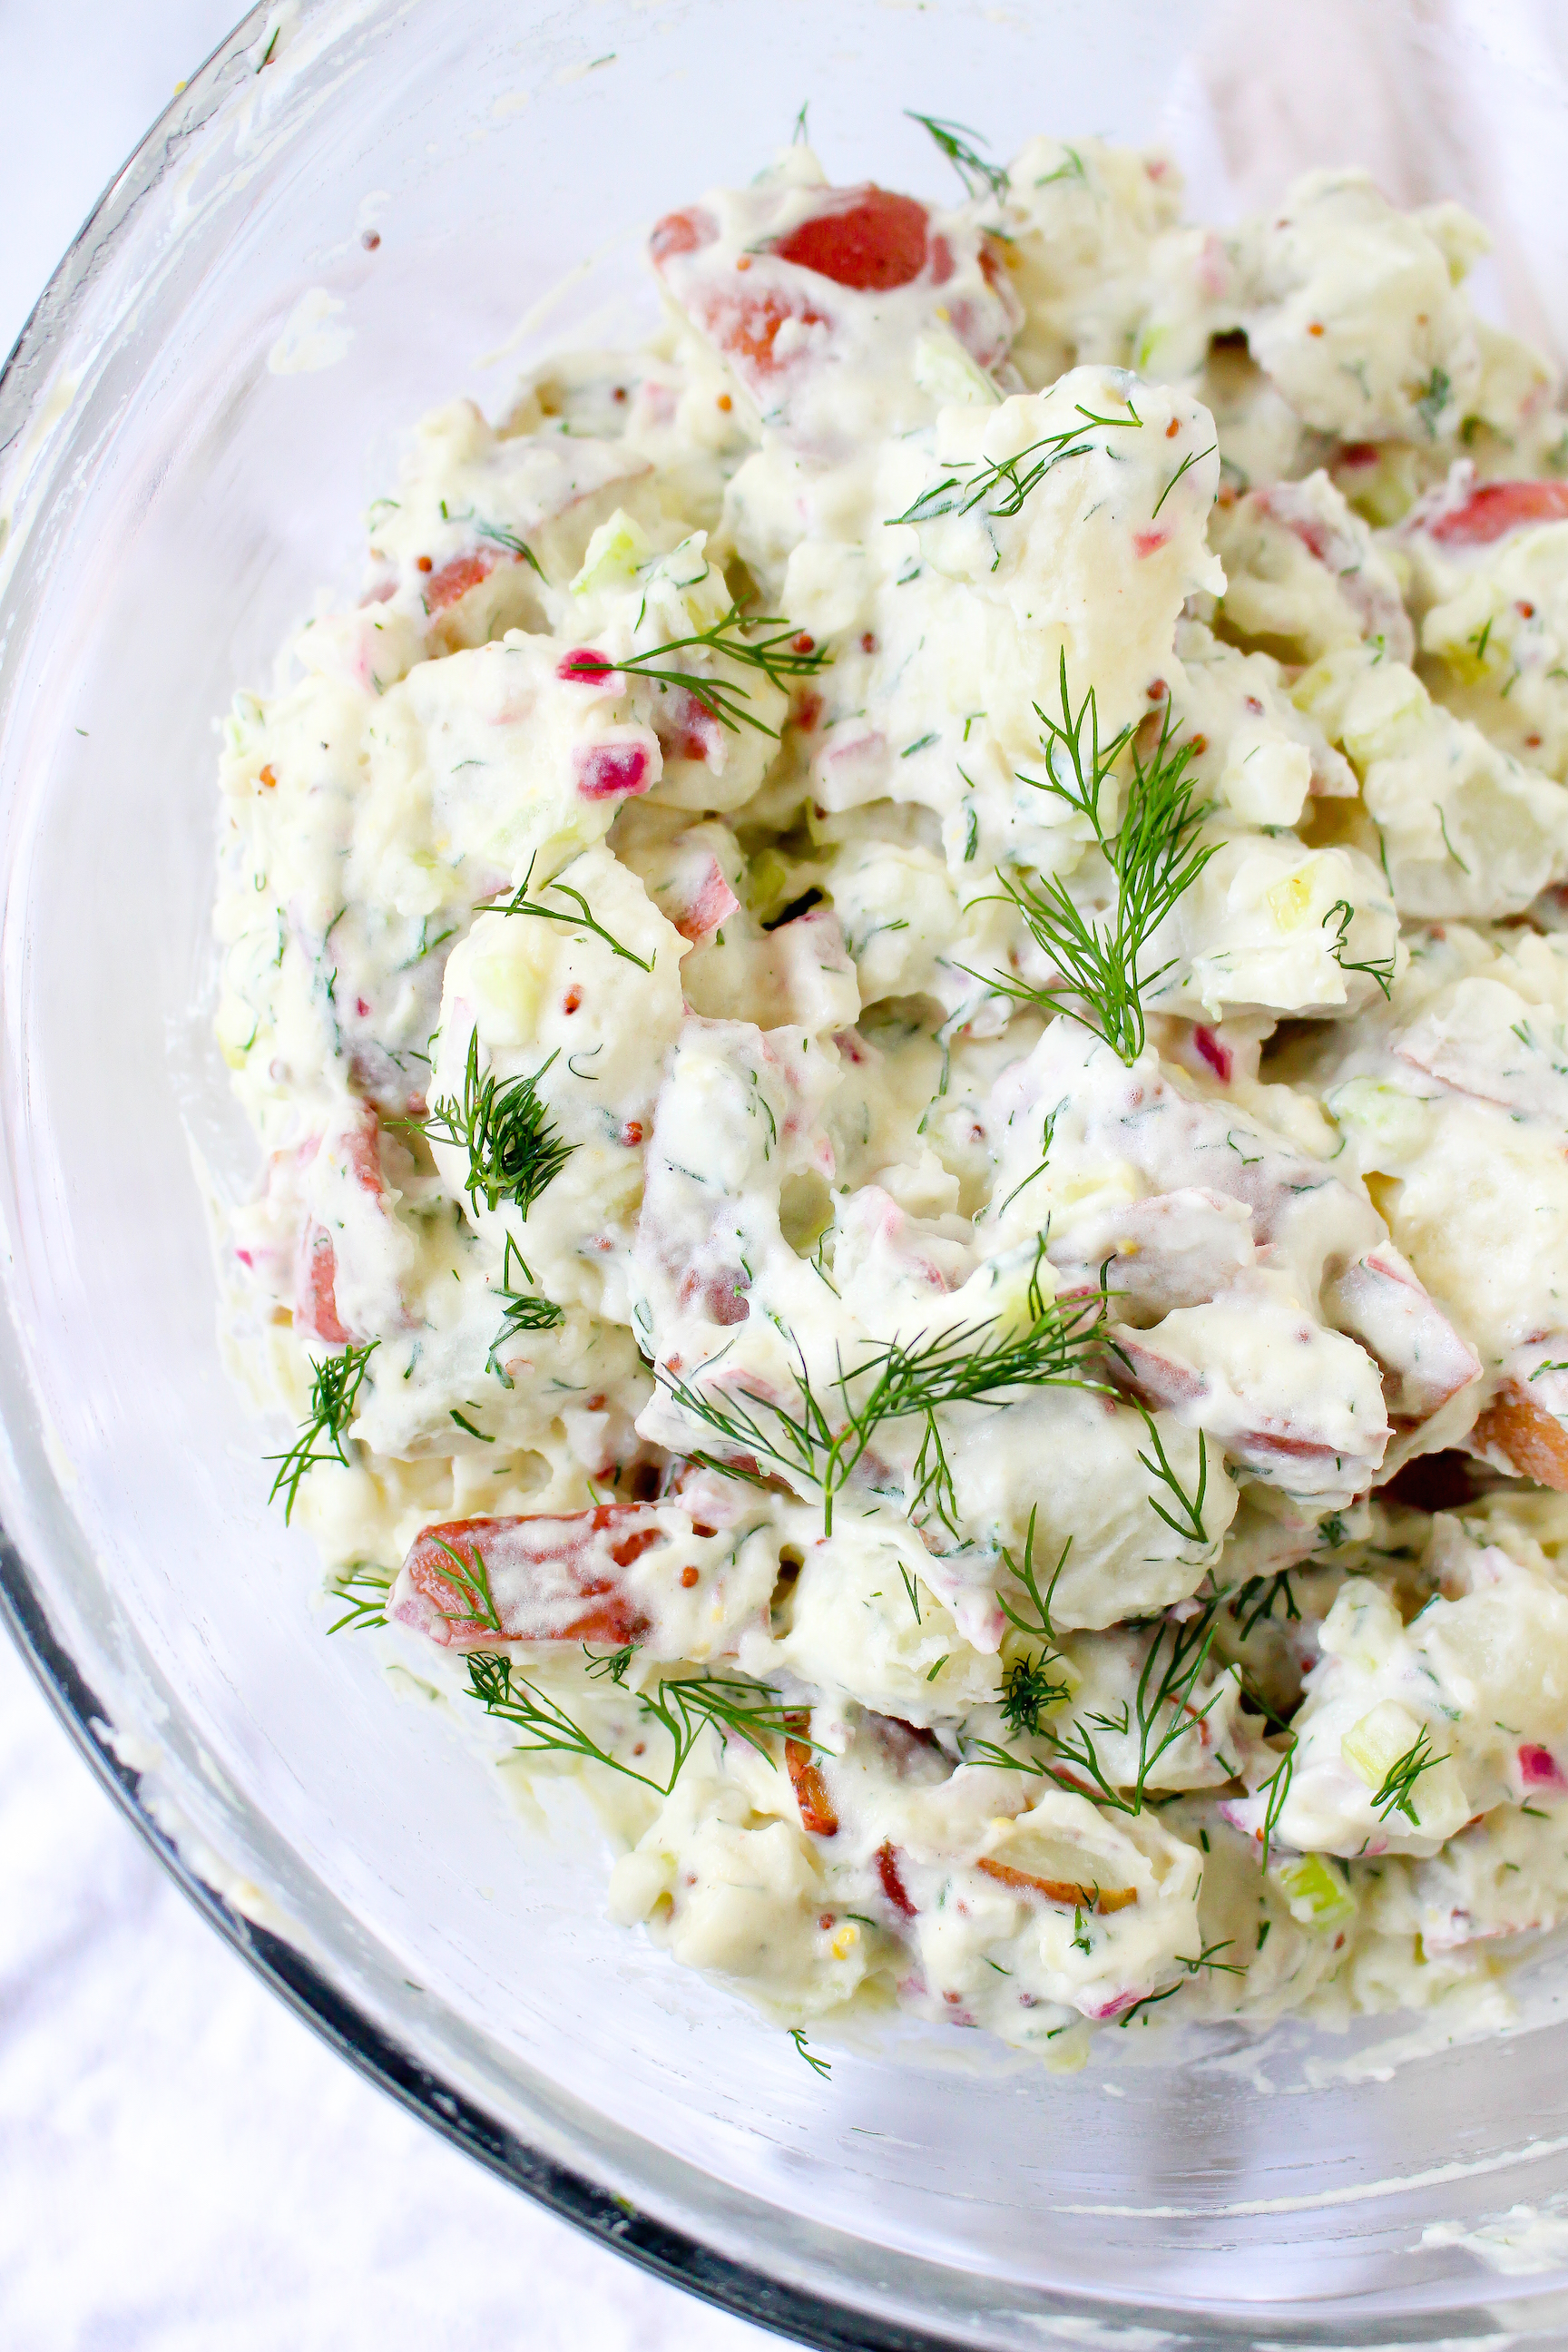 Potato Salad with Dill & Mustard Dressing